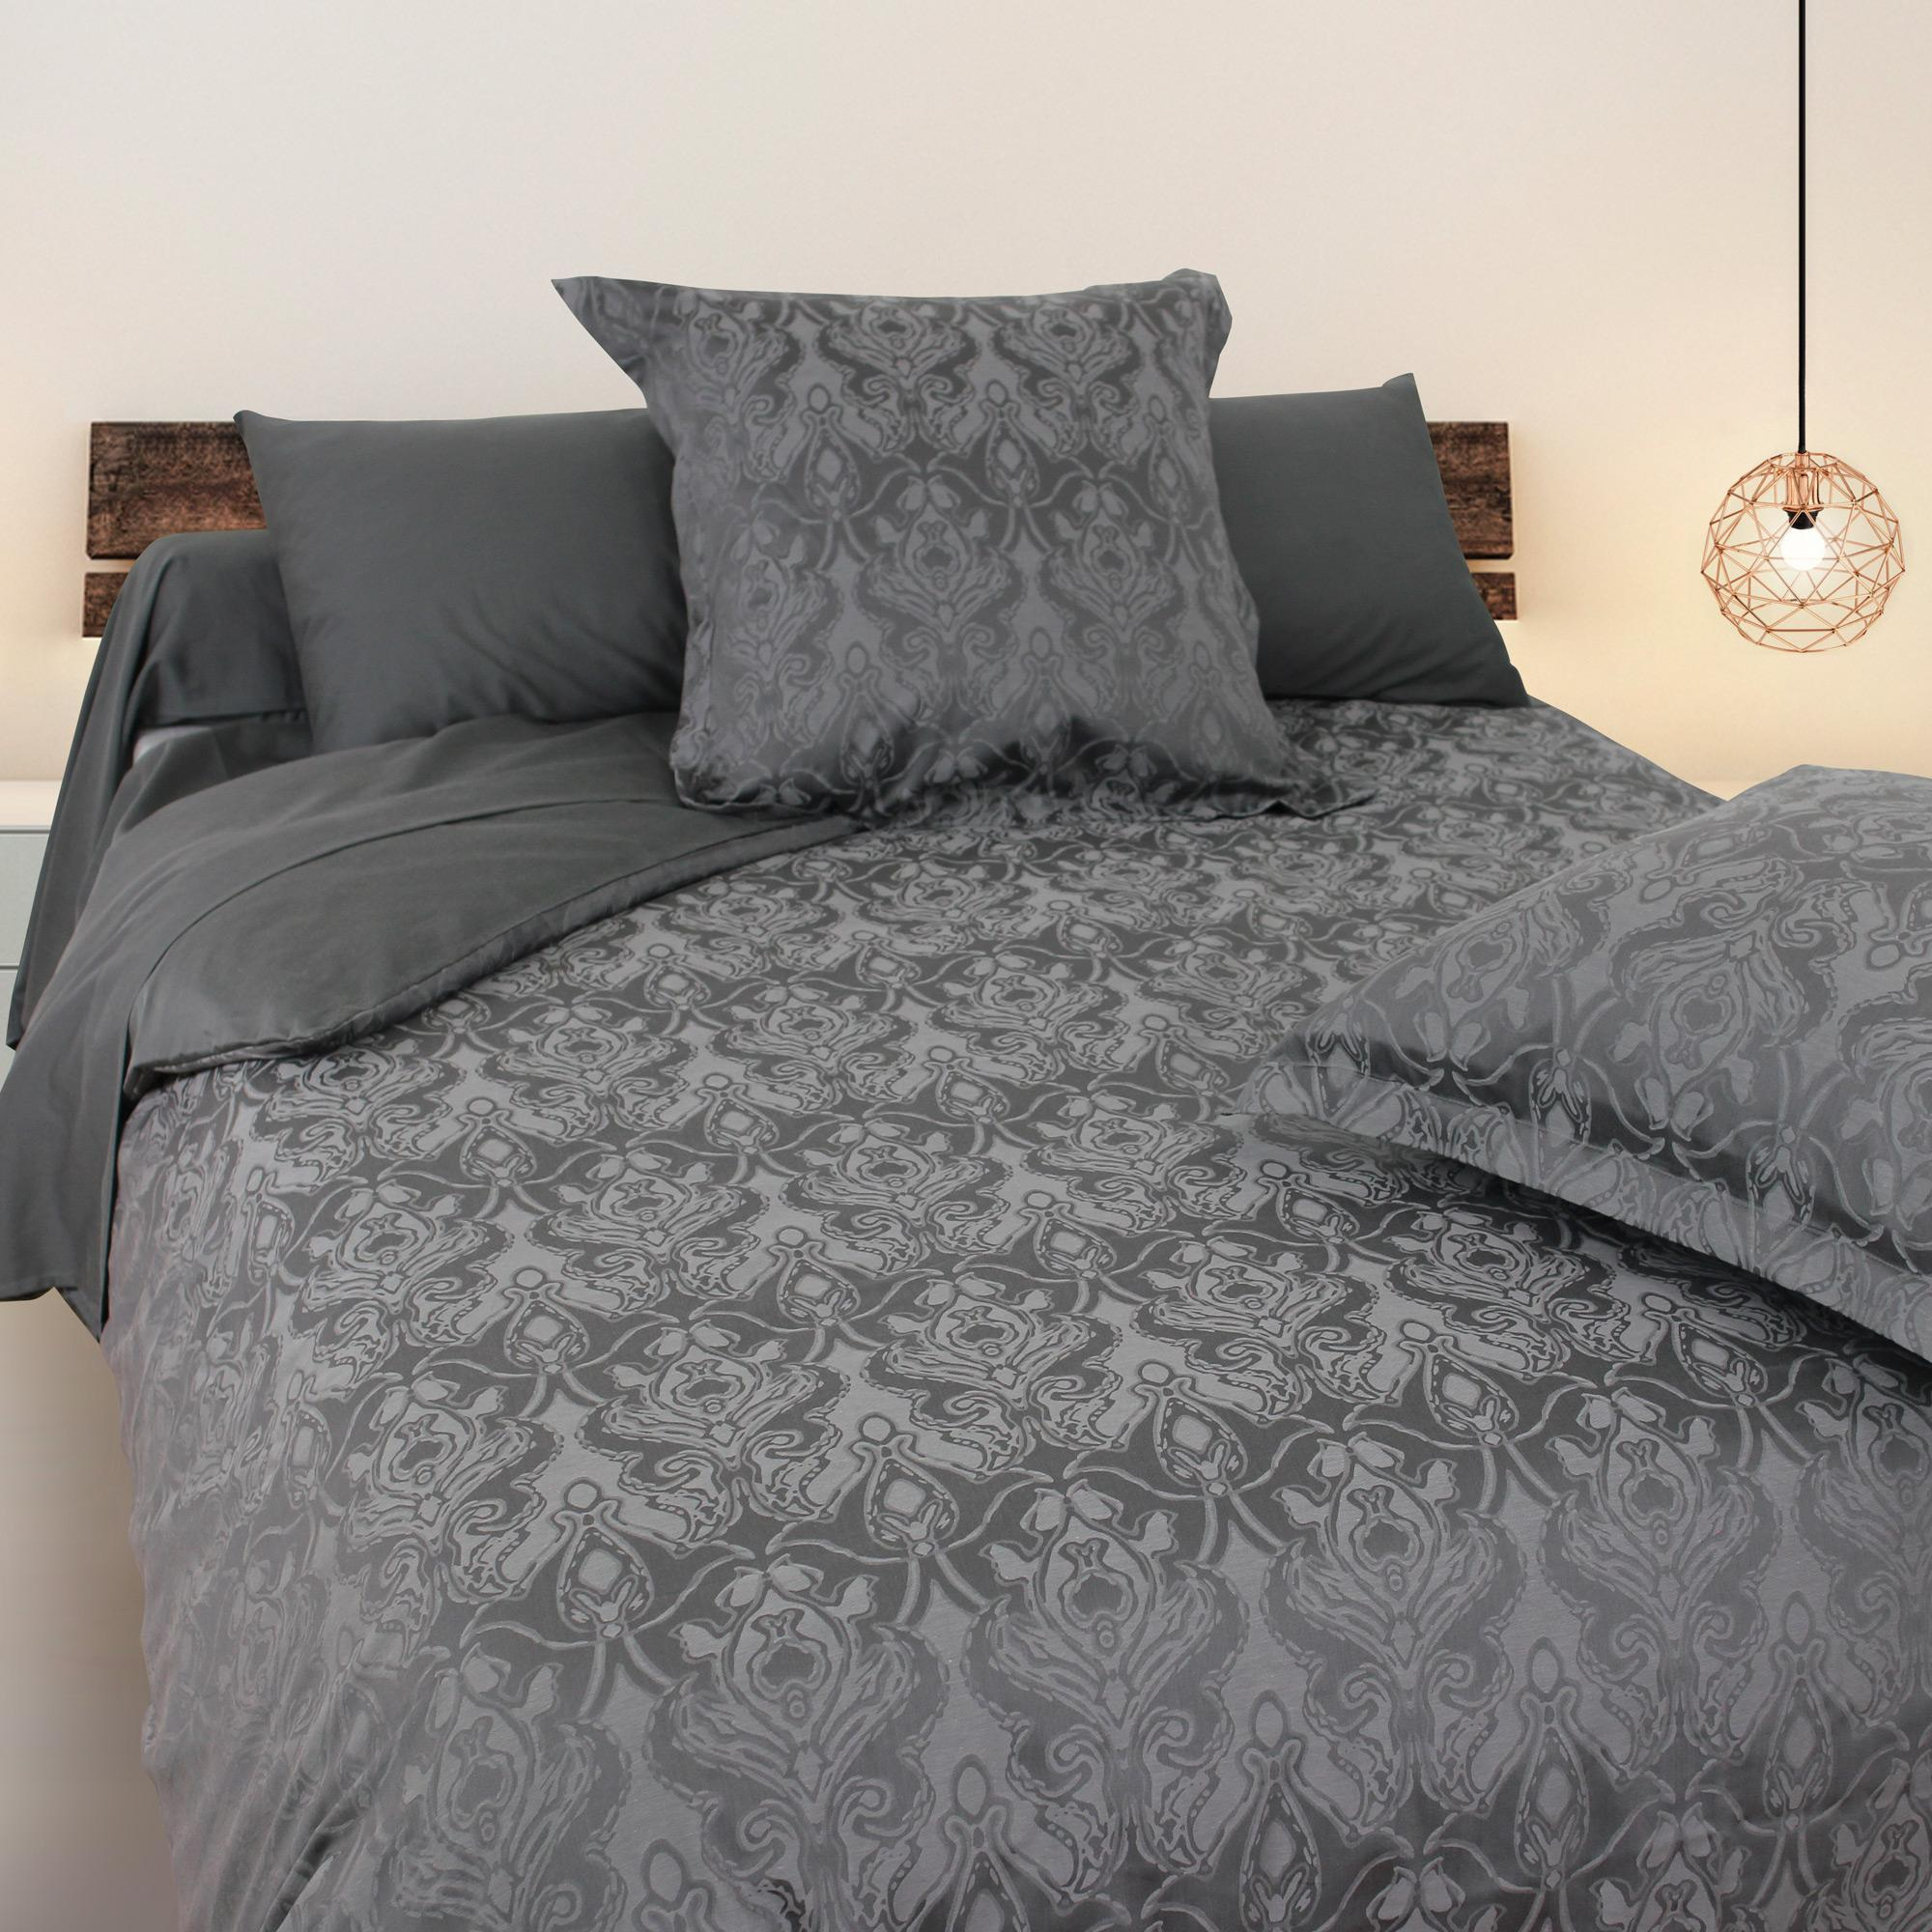 drap plat 270x310 uni satin de coton vosges gris fonc ebay. Black Bedroom Furniture Sets. Home Design Ideas